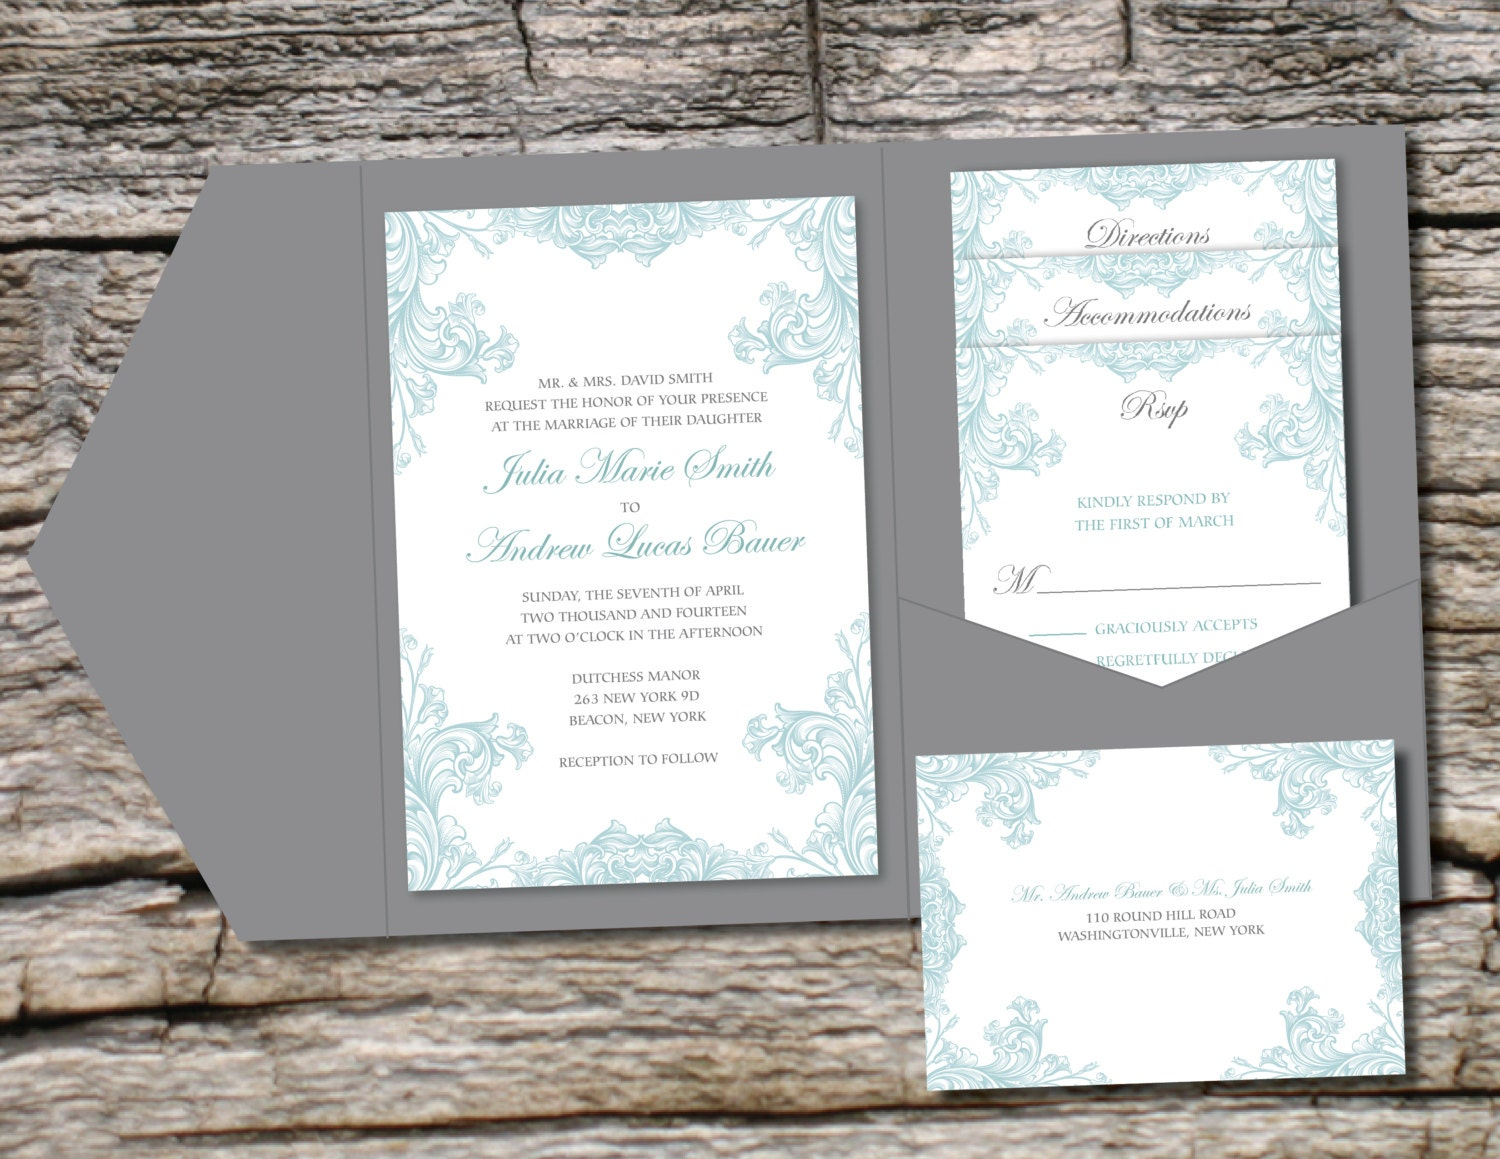 vistaprint details for invitations and inserts? weddingbee Custom Wedding Invitation Inserts Custom Wedding Invitation Inserts #2 Wedding Website Invitation Insert